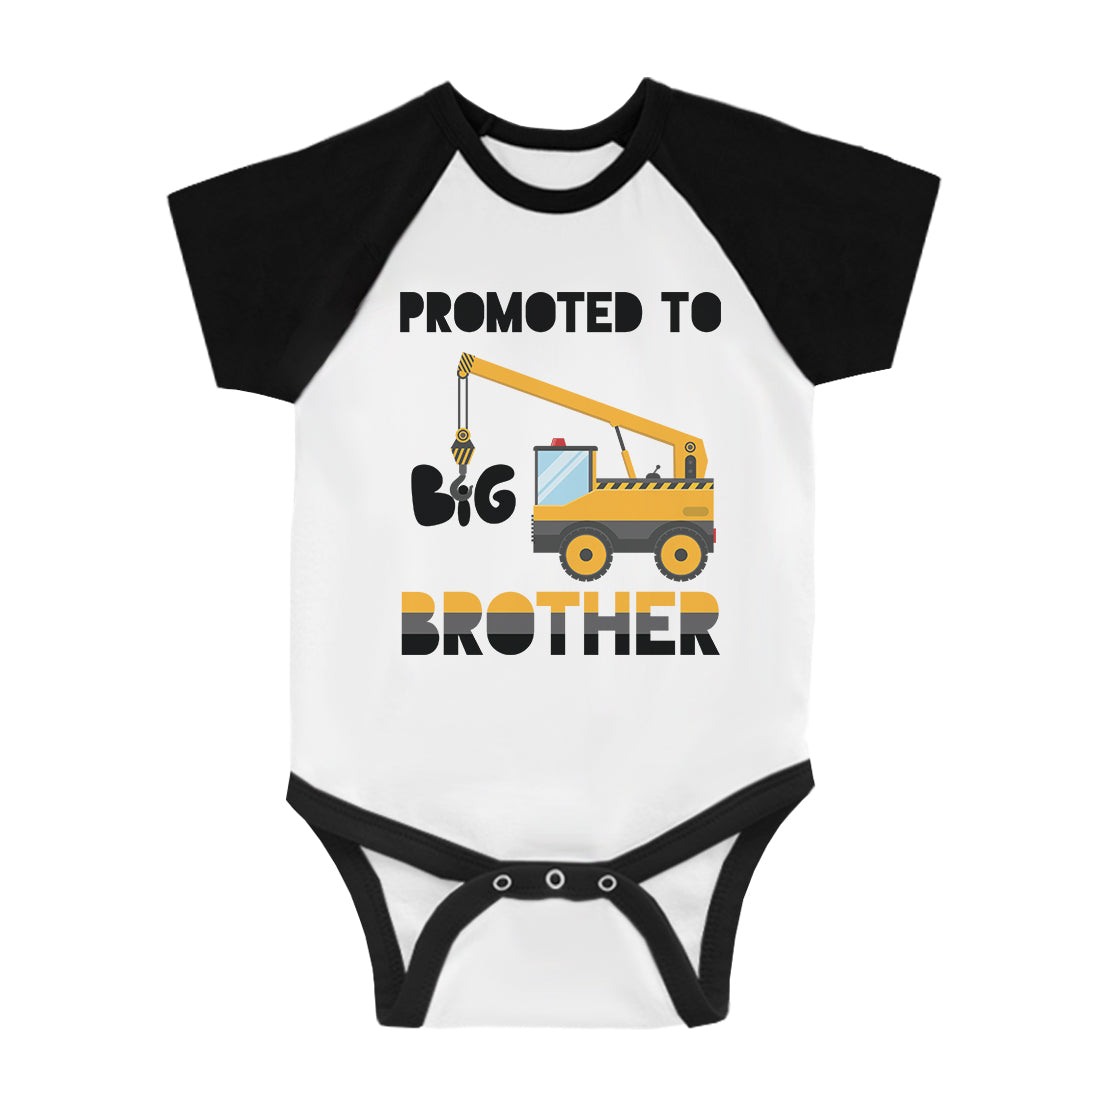 87566dab Promoted To Big Brother Infant Baseball Shirt Baby Announment Tee ...